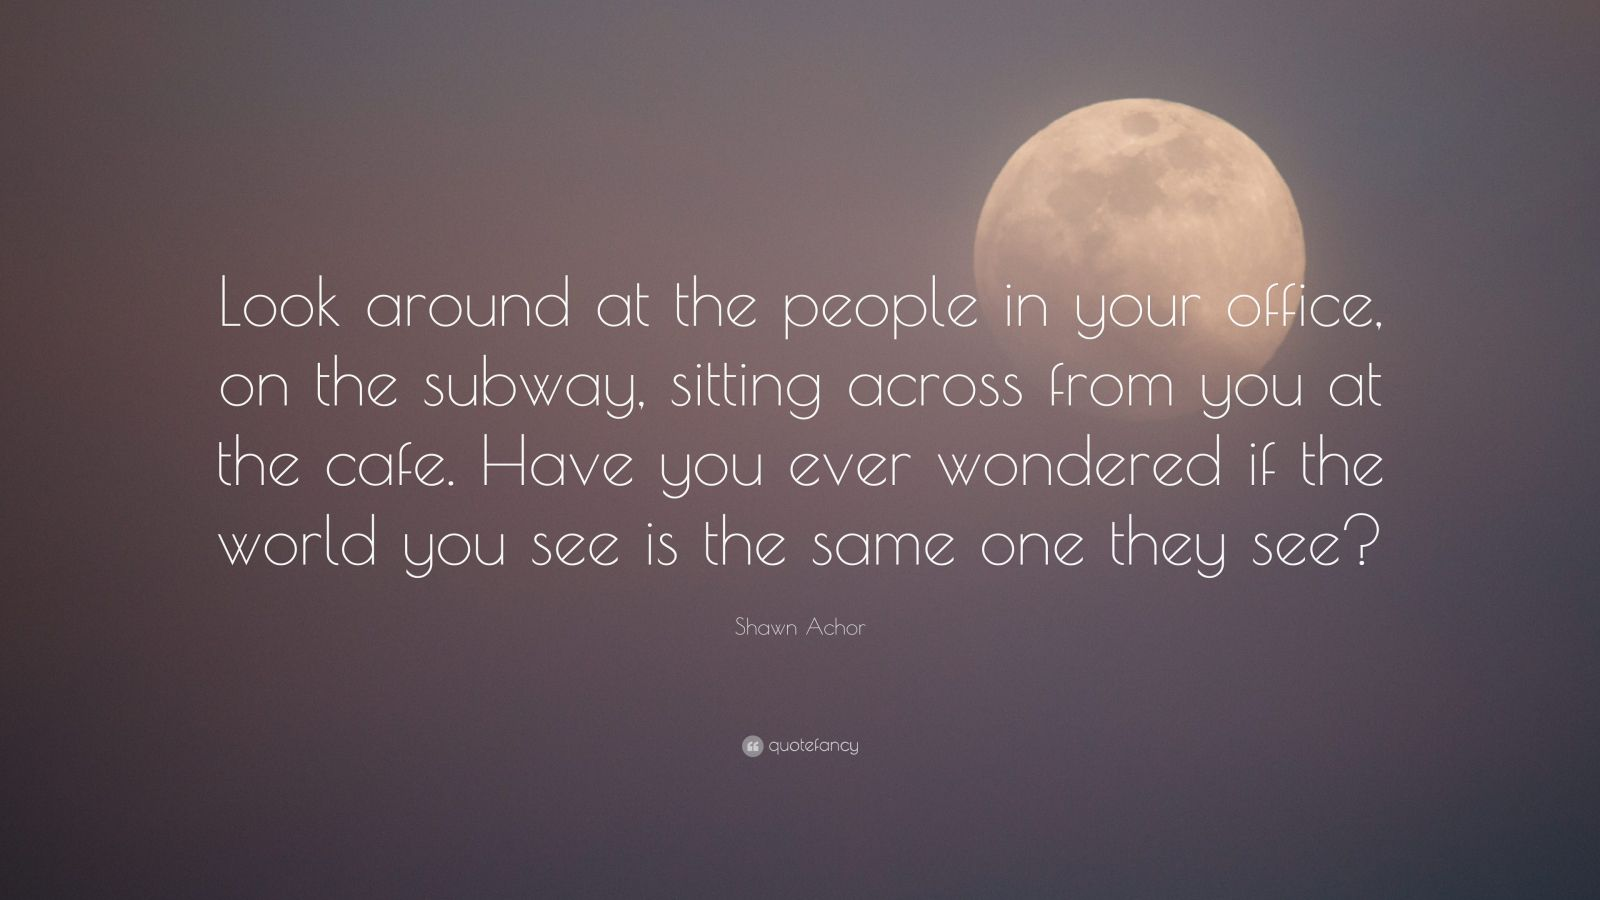 """Shawn Achor Quote: """"Look around at the people in your office, on the subway, sitting across from you at the cafe. Have you ever wondered if the world you see is the same one they see?"""""""